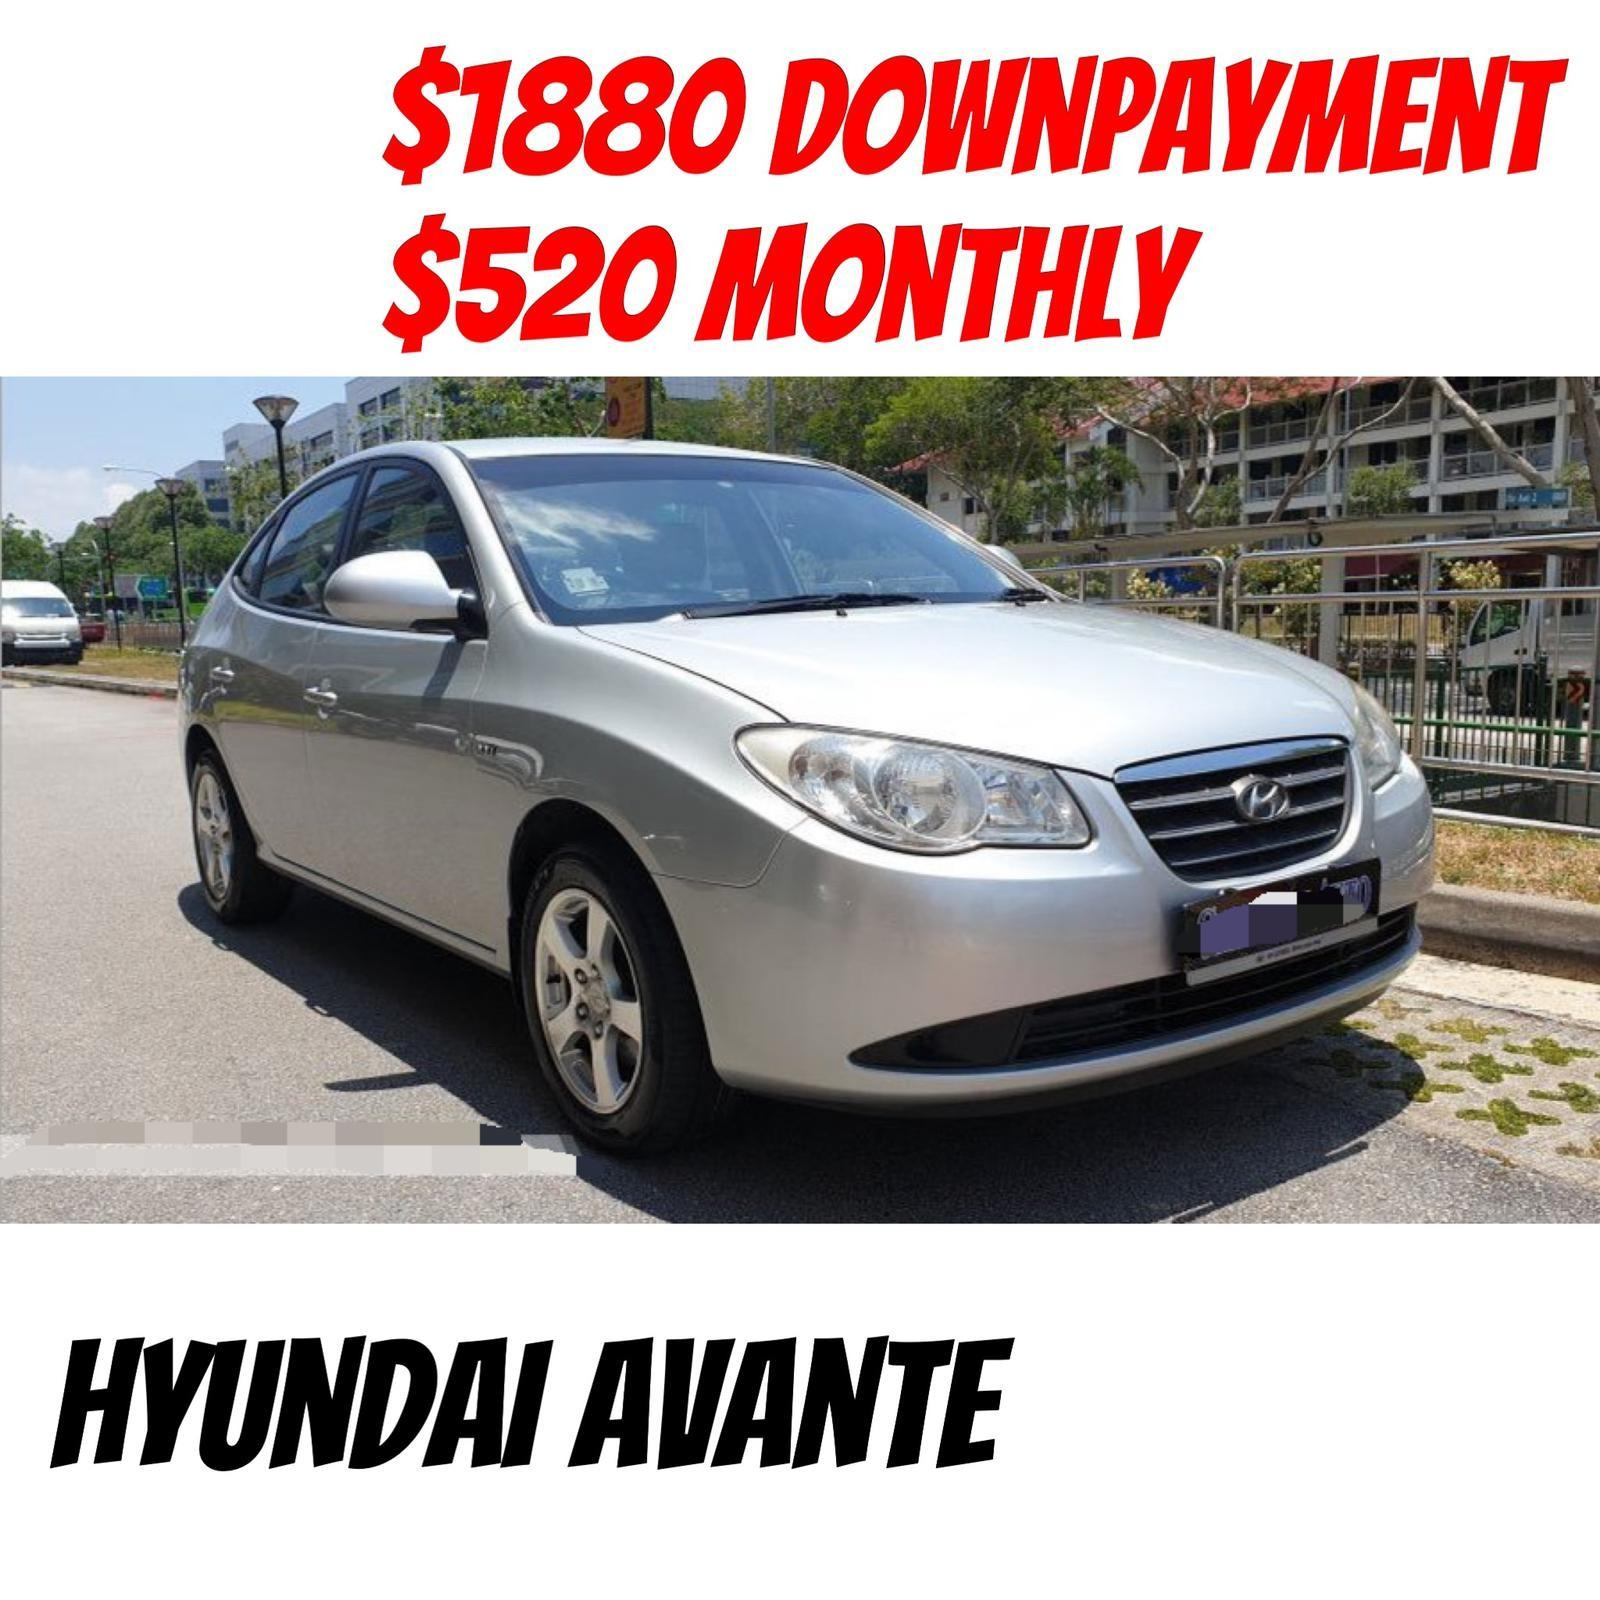 Hyundai Avante Only 1880 Downpayment Full Loan Cars Cars For